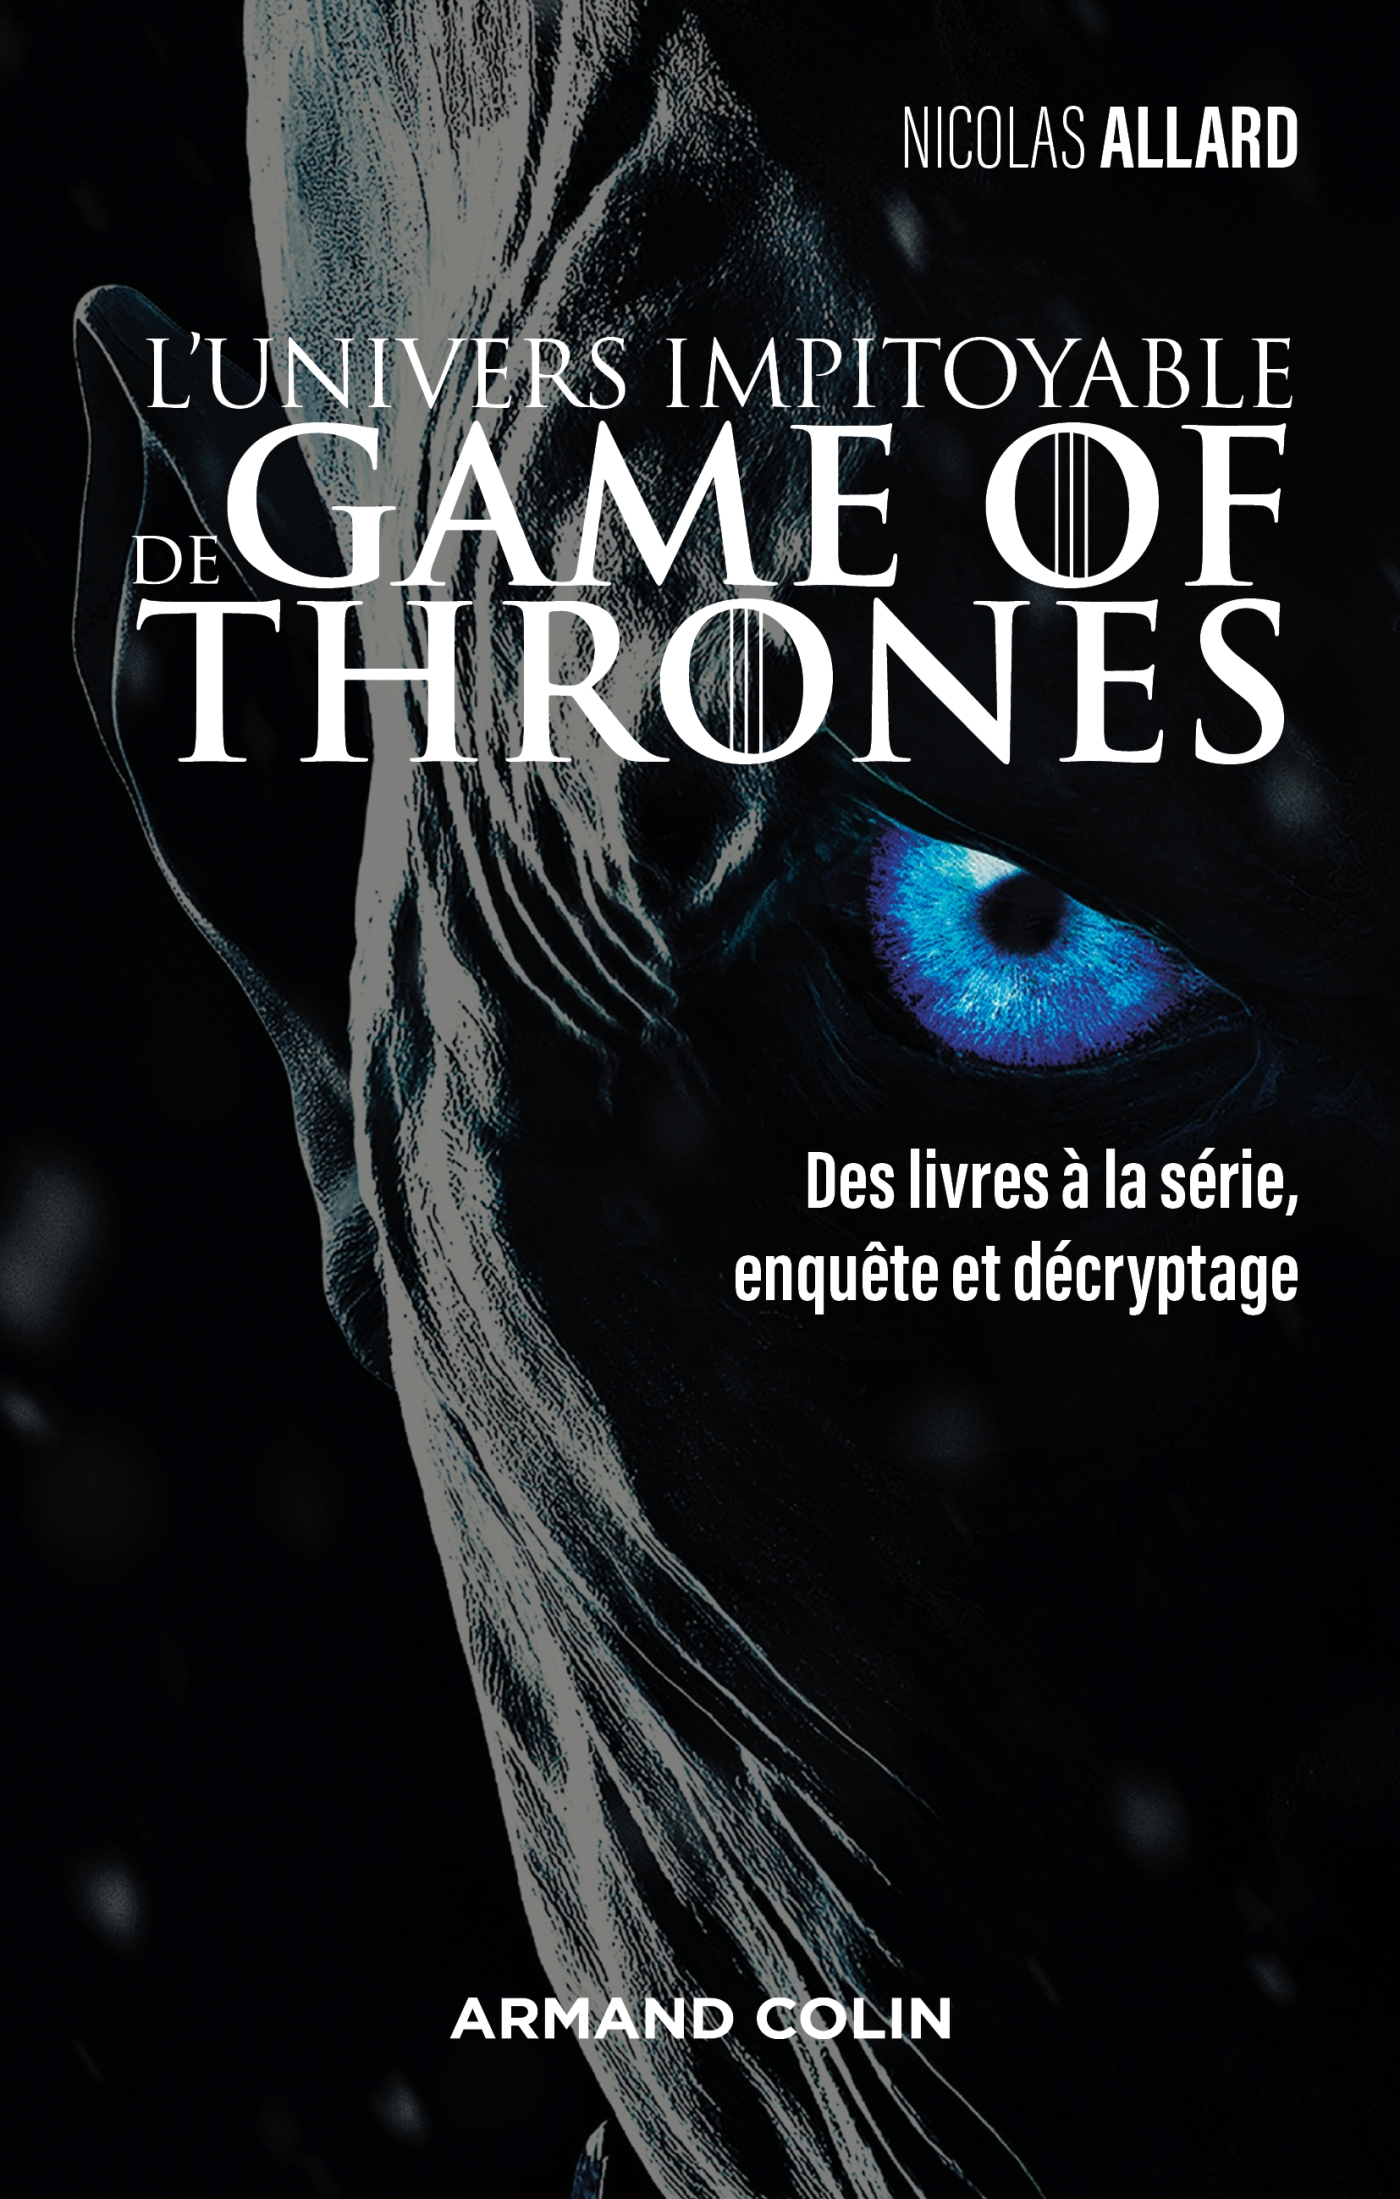 L'univers impitoyable de Game of Thrones